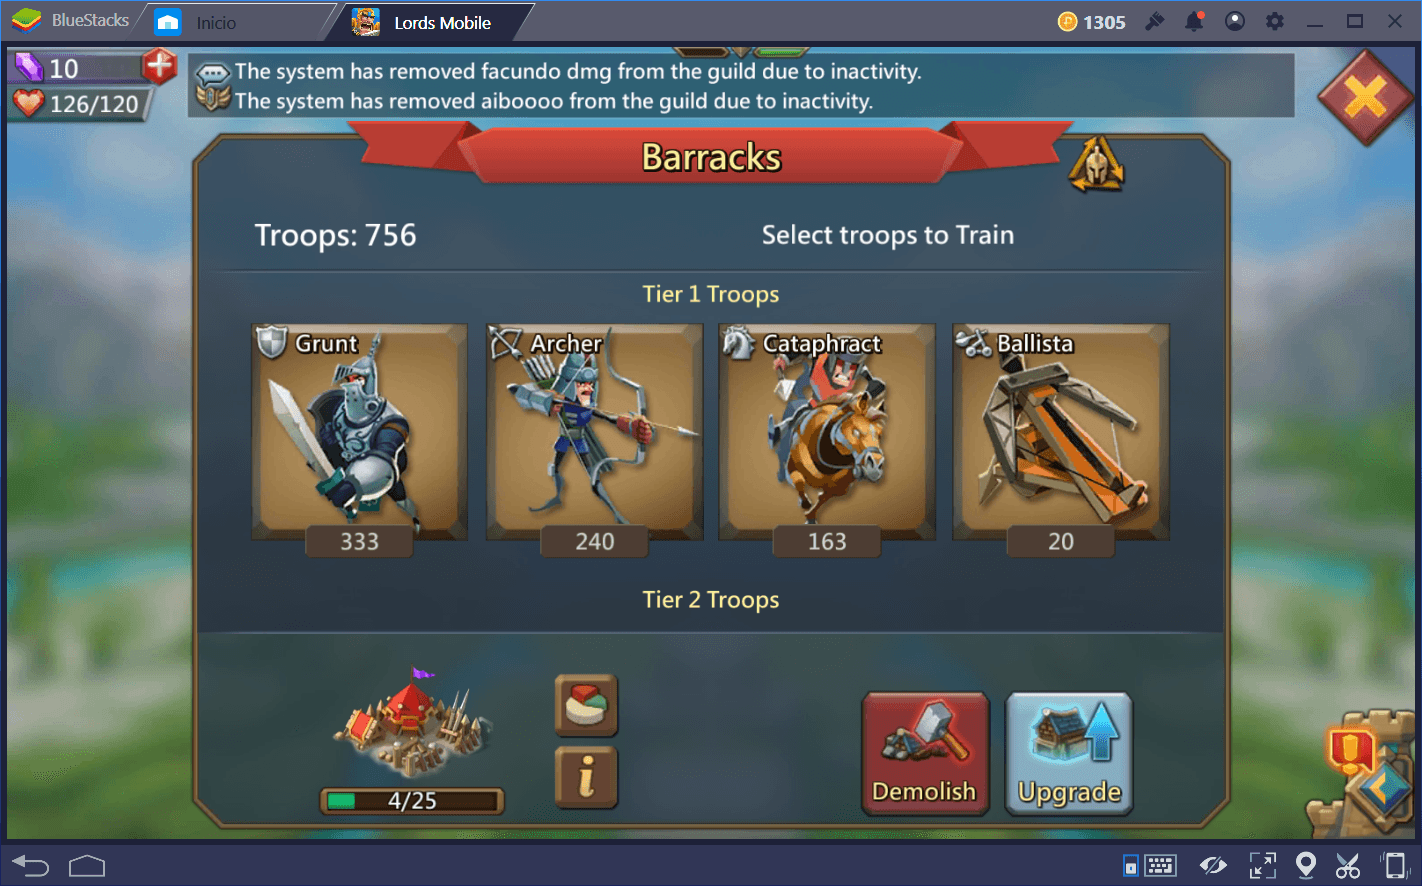 A Guide to Structures and Buildings in Lords Mobile